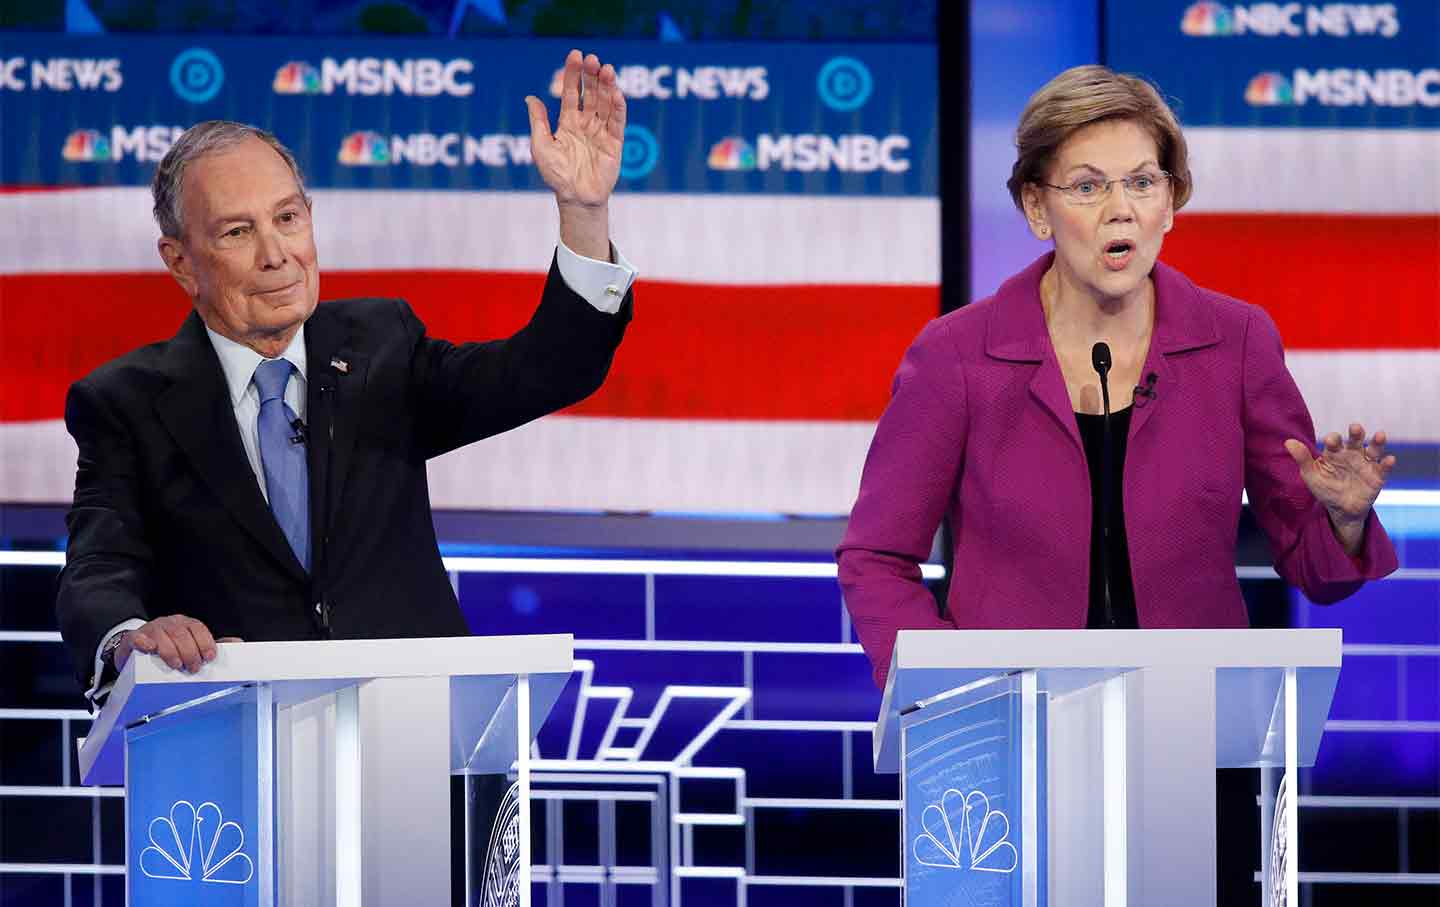 bloomberg-warren-nevada-debate-ap-img